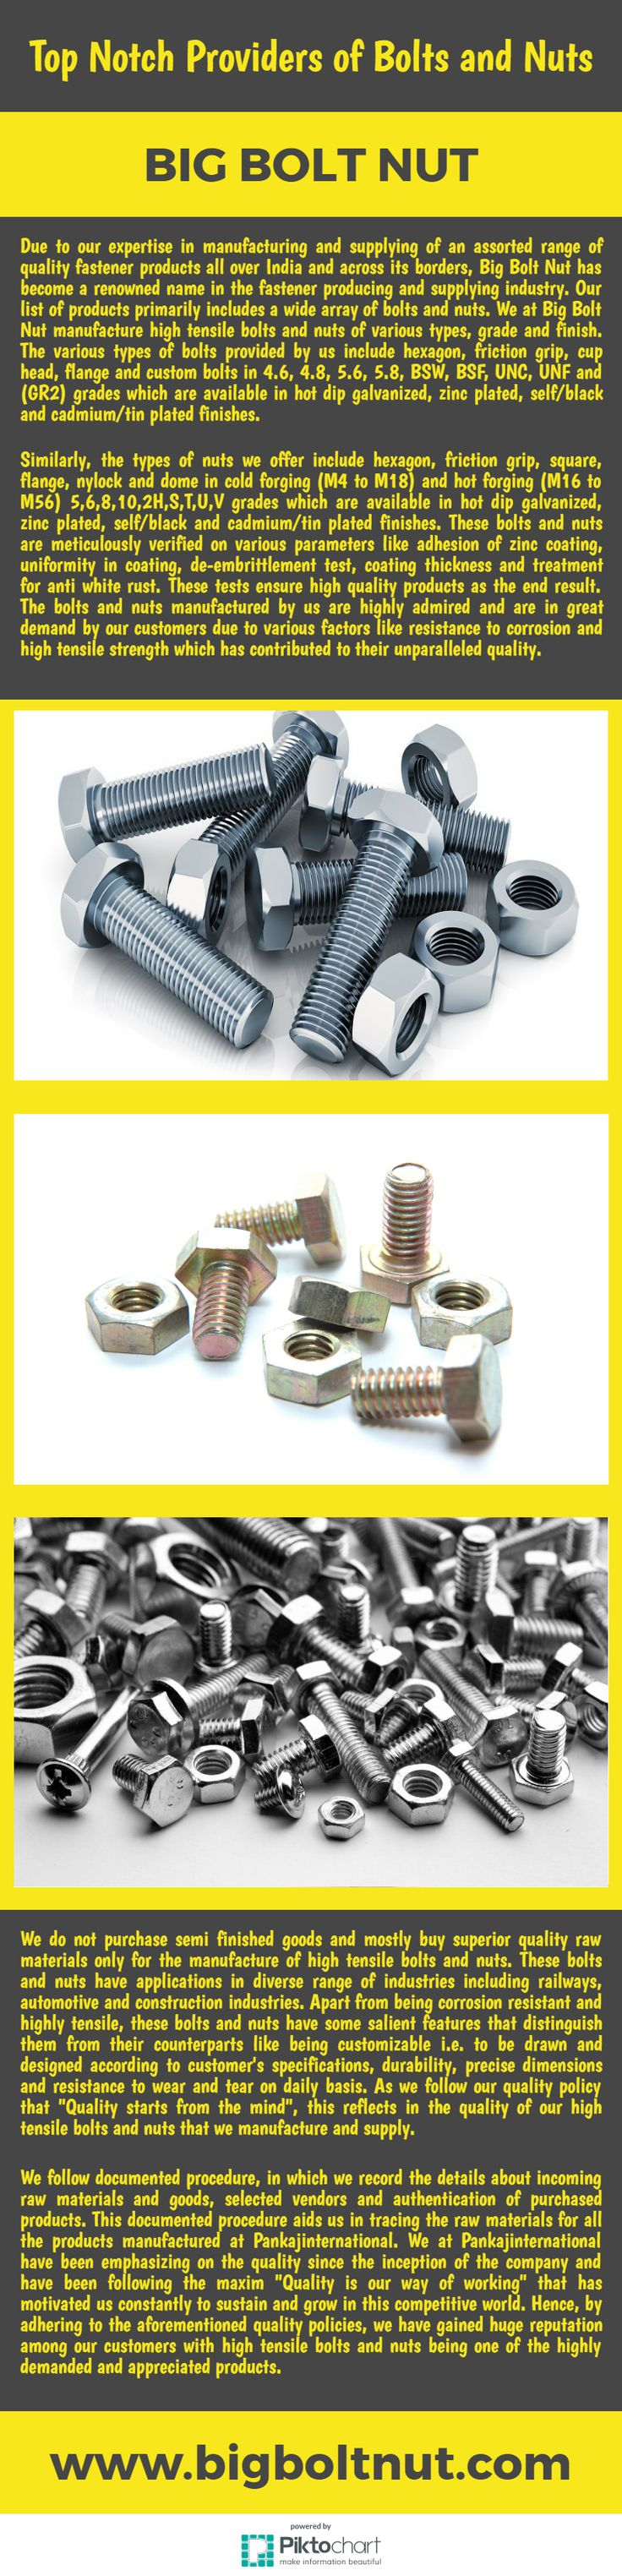 Due to our expertise in manufacturing and supplying of an assorted range of quality fastener products all over India and across its borders, Big Bolt Nut has become a renowned name in the fastener producing and supplying industry.